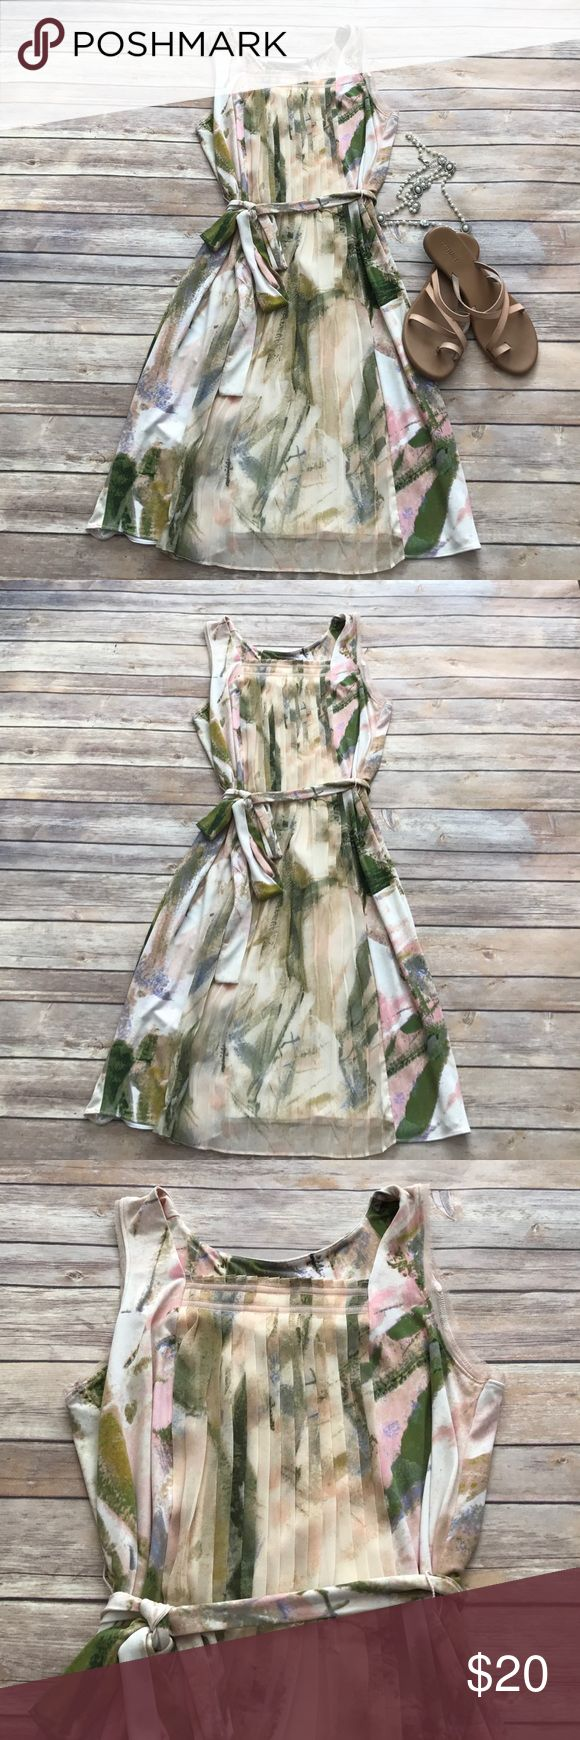 "Simply Vera watercolor dress Beautiful Simply Vera watercolor floral dress in EUC. Measures 37"" in length, no holes or stains. Make an offer or bundle and save! Simply Vera Vera Wang Dresses Midi"